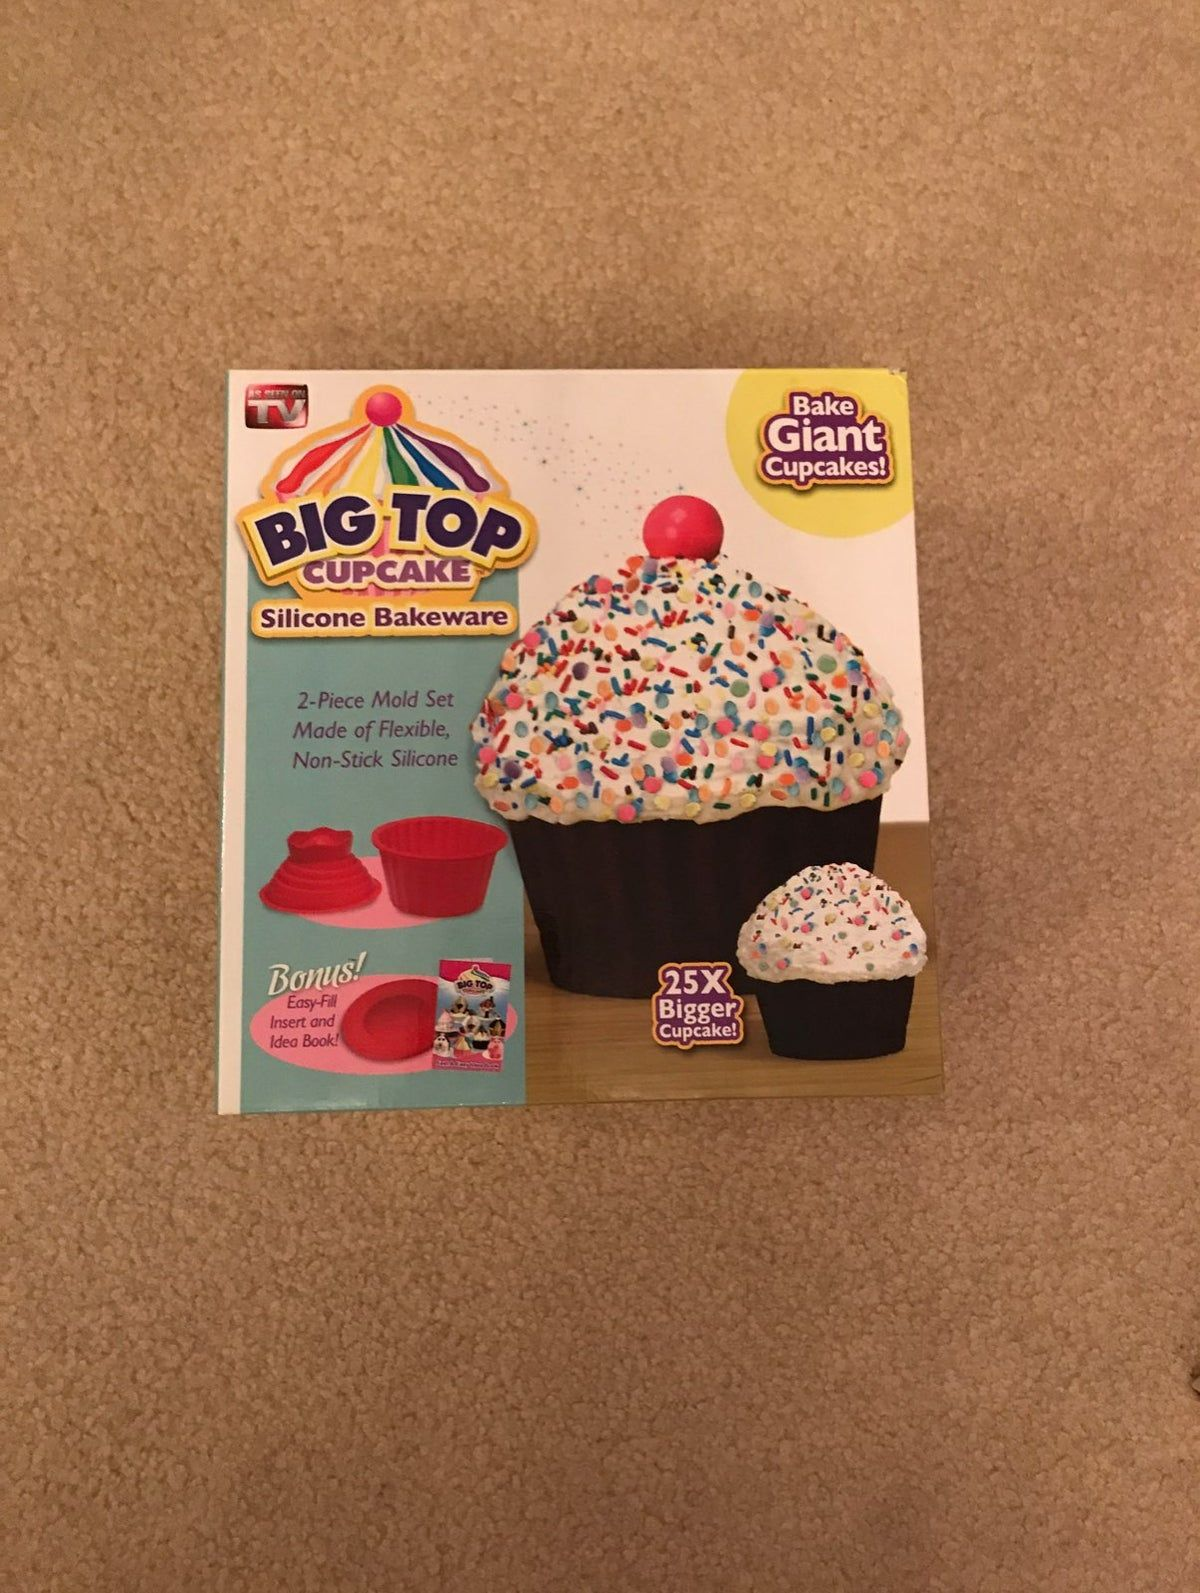 big top cupcake cake silicon molds on Mercari